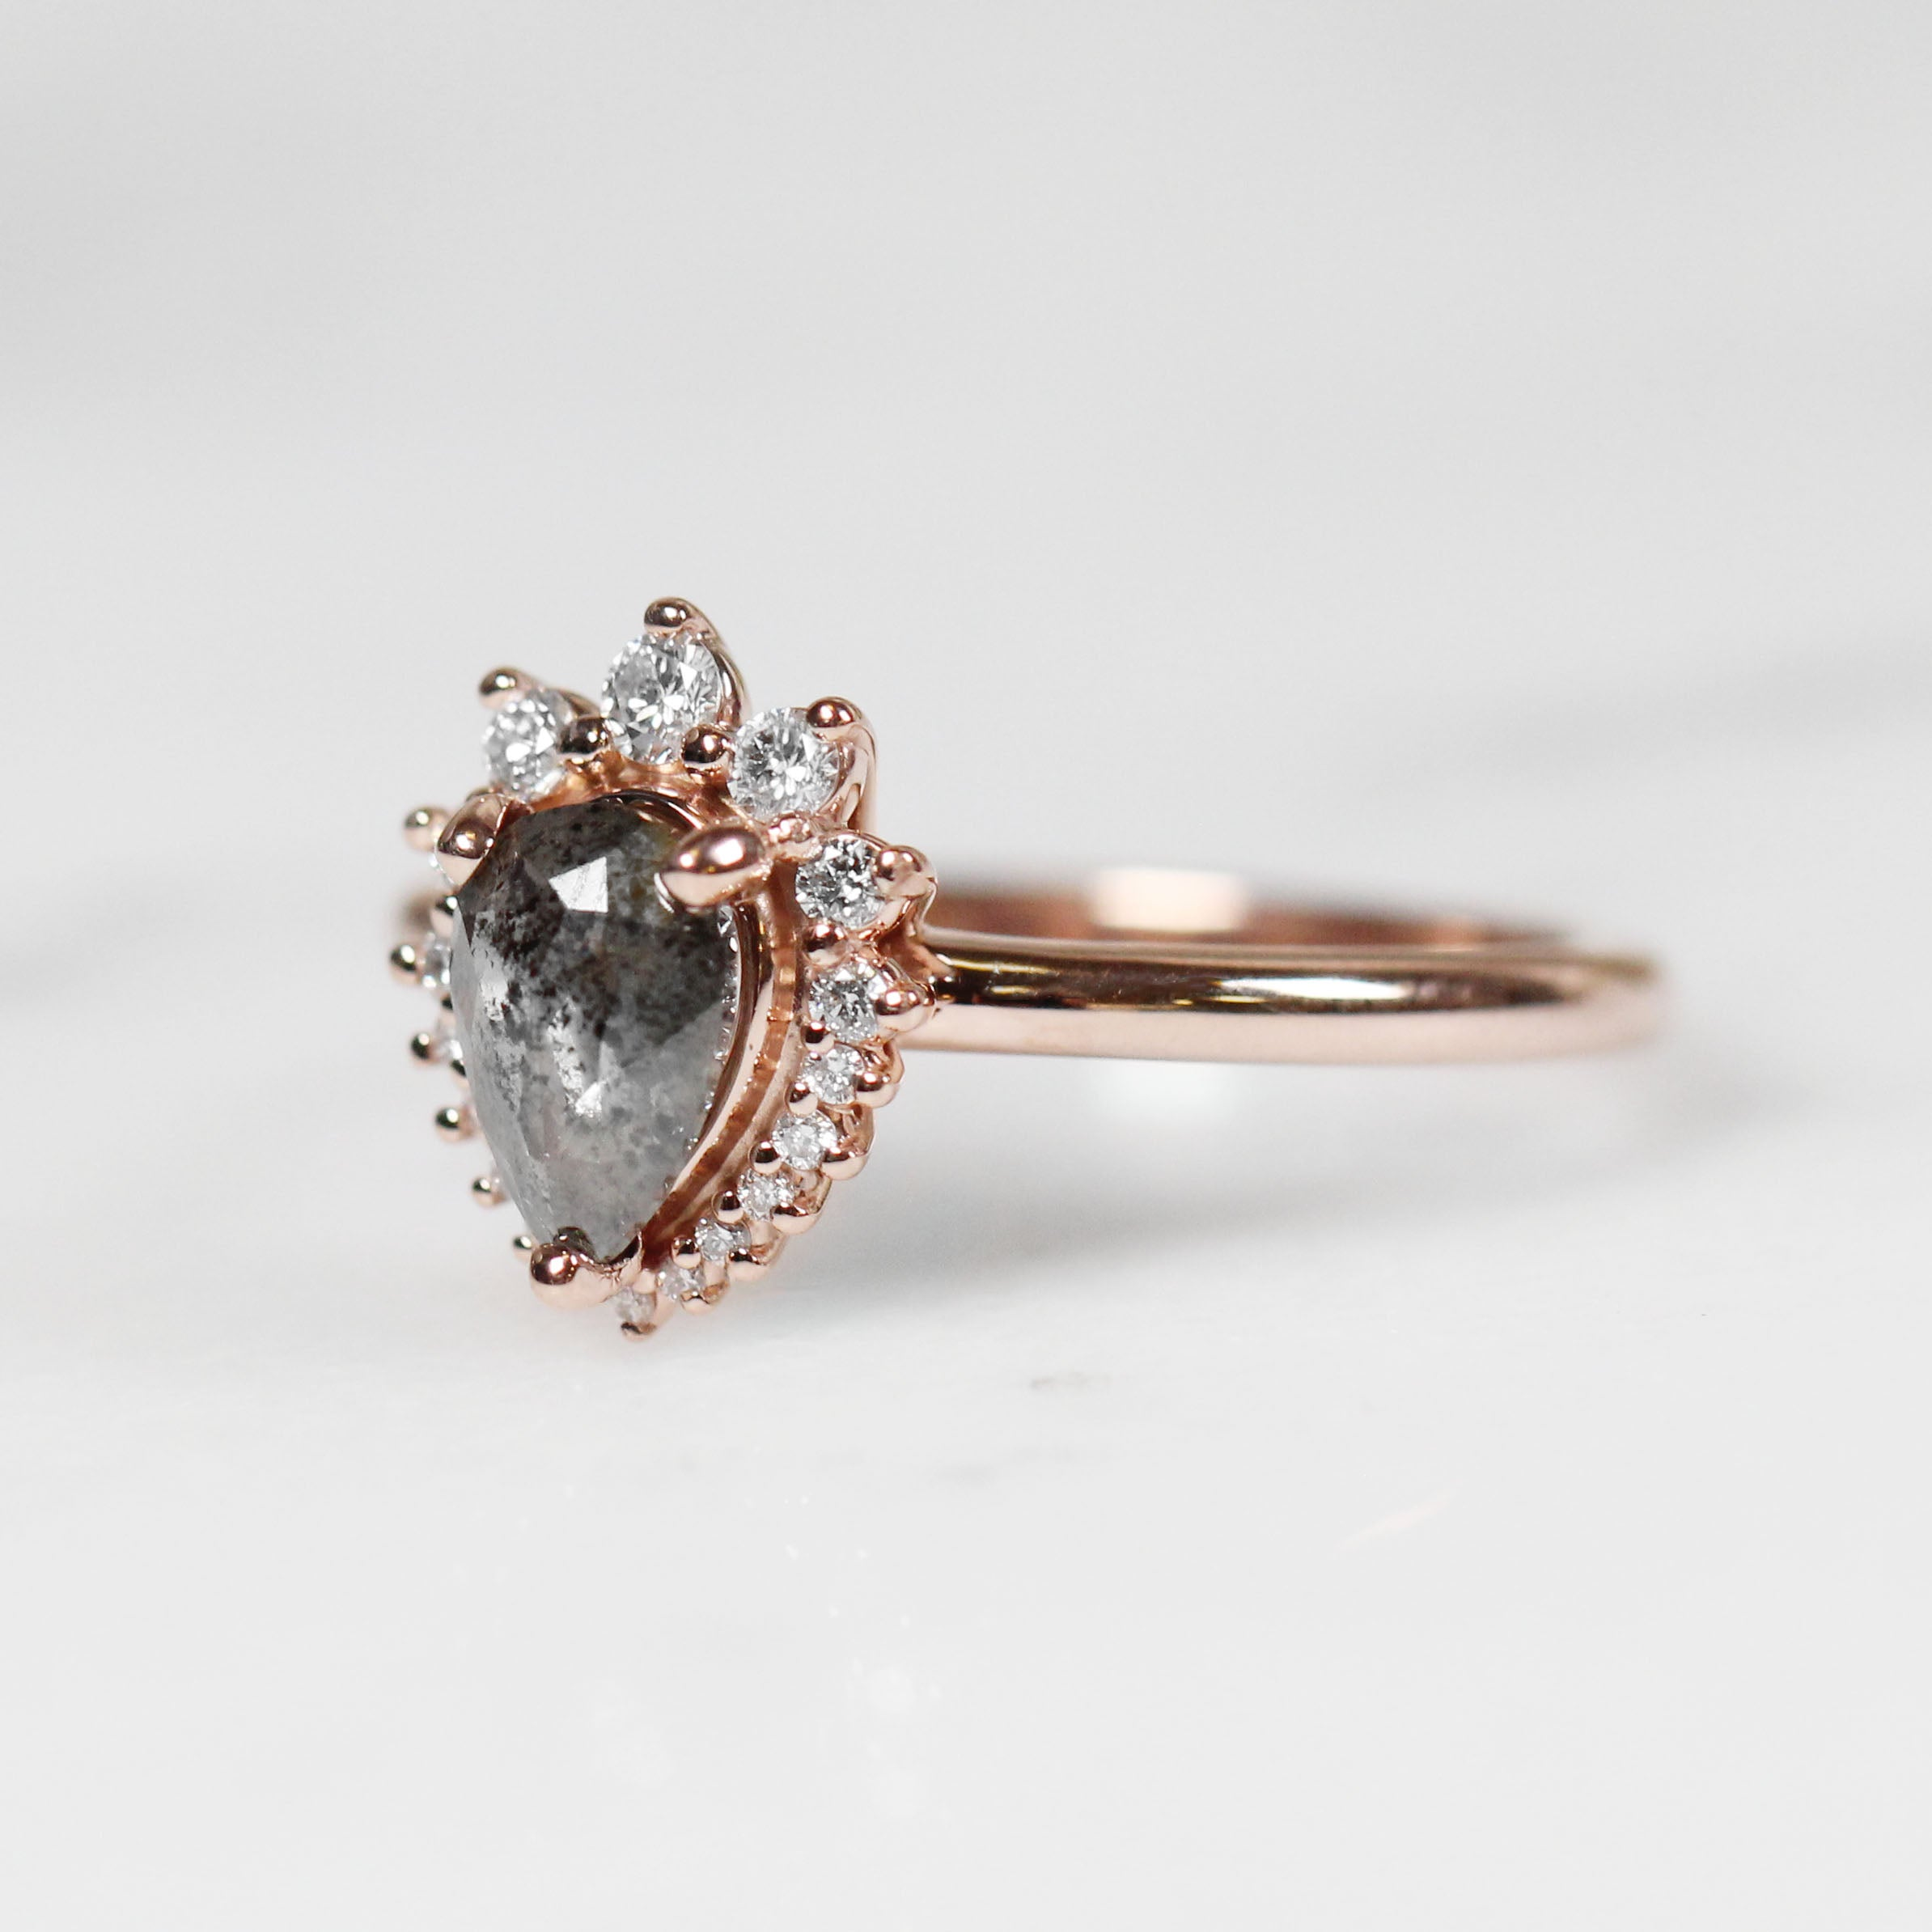 Eleanor Ring with .82 Carat Pear Diamond in 10k Rose Gold - Ready to Size and Ship - Celestial Diamonds ® by Midwinter Co.